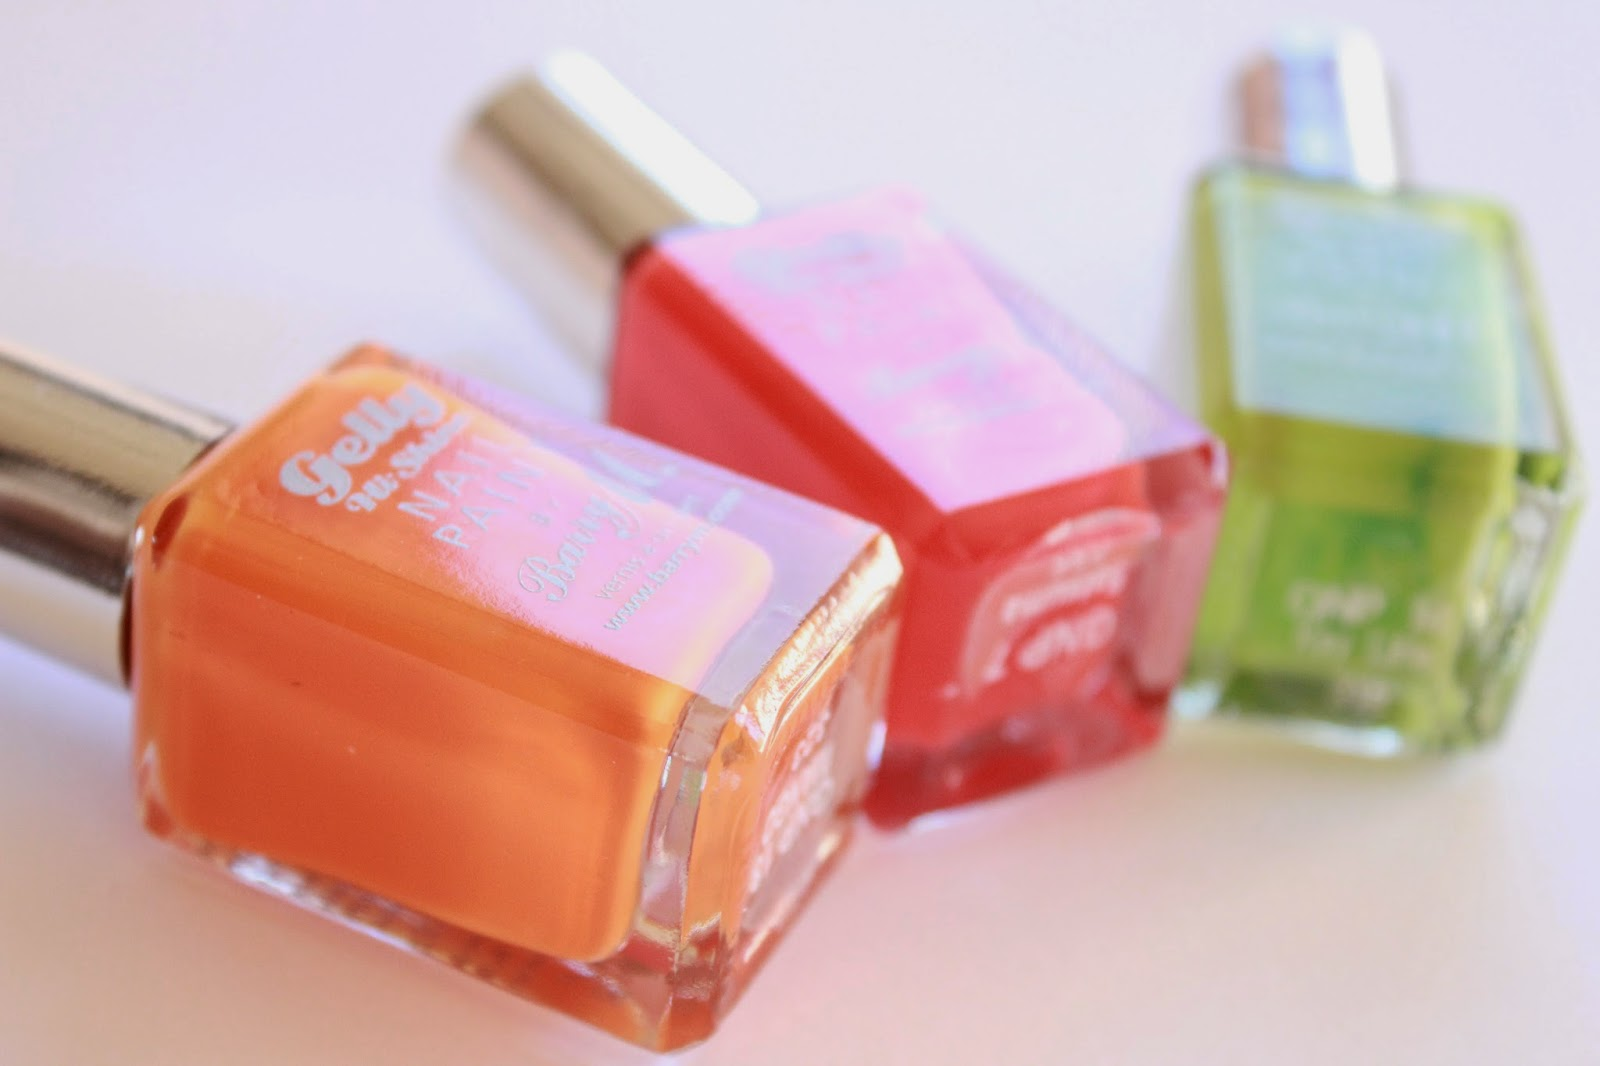 review ervaring swatches barry m hi-shine nail paint mango satsuma key lime